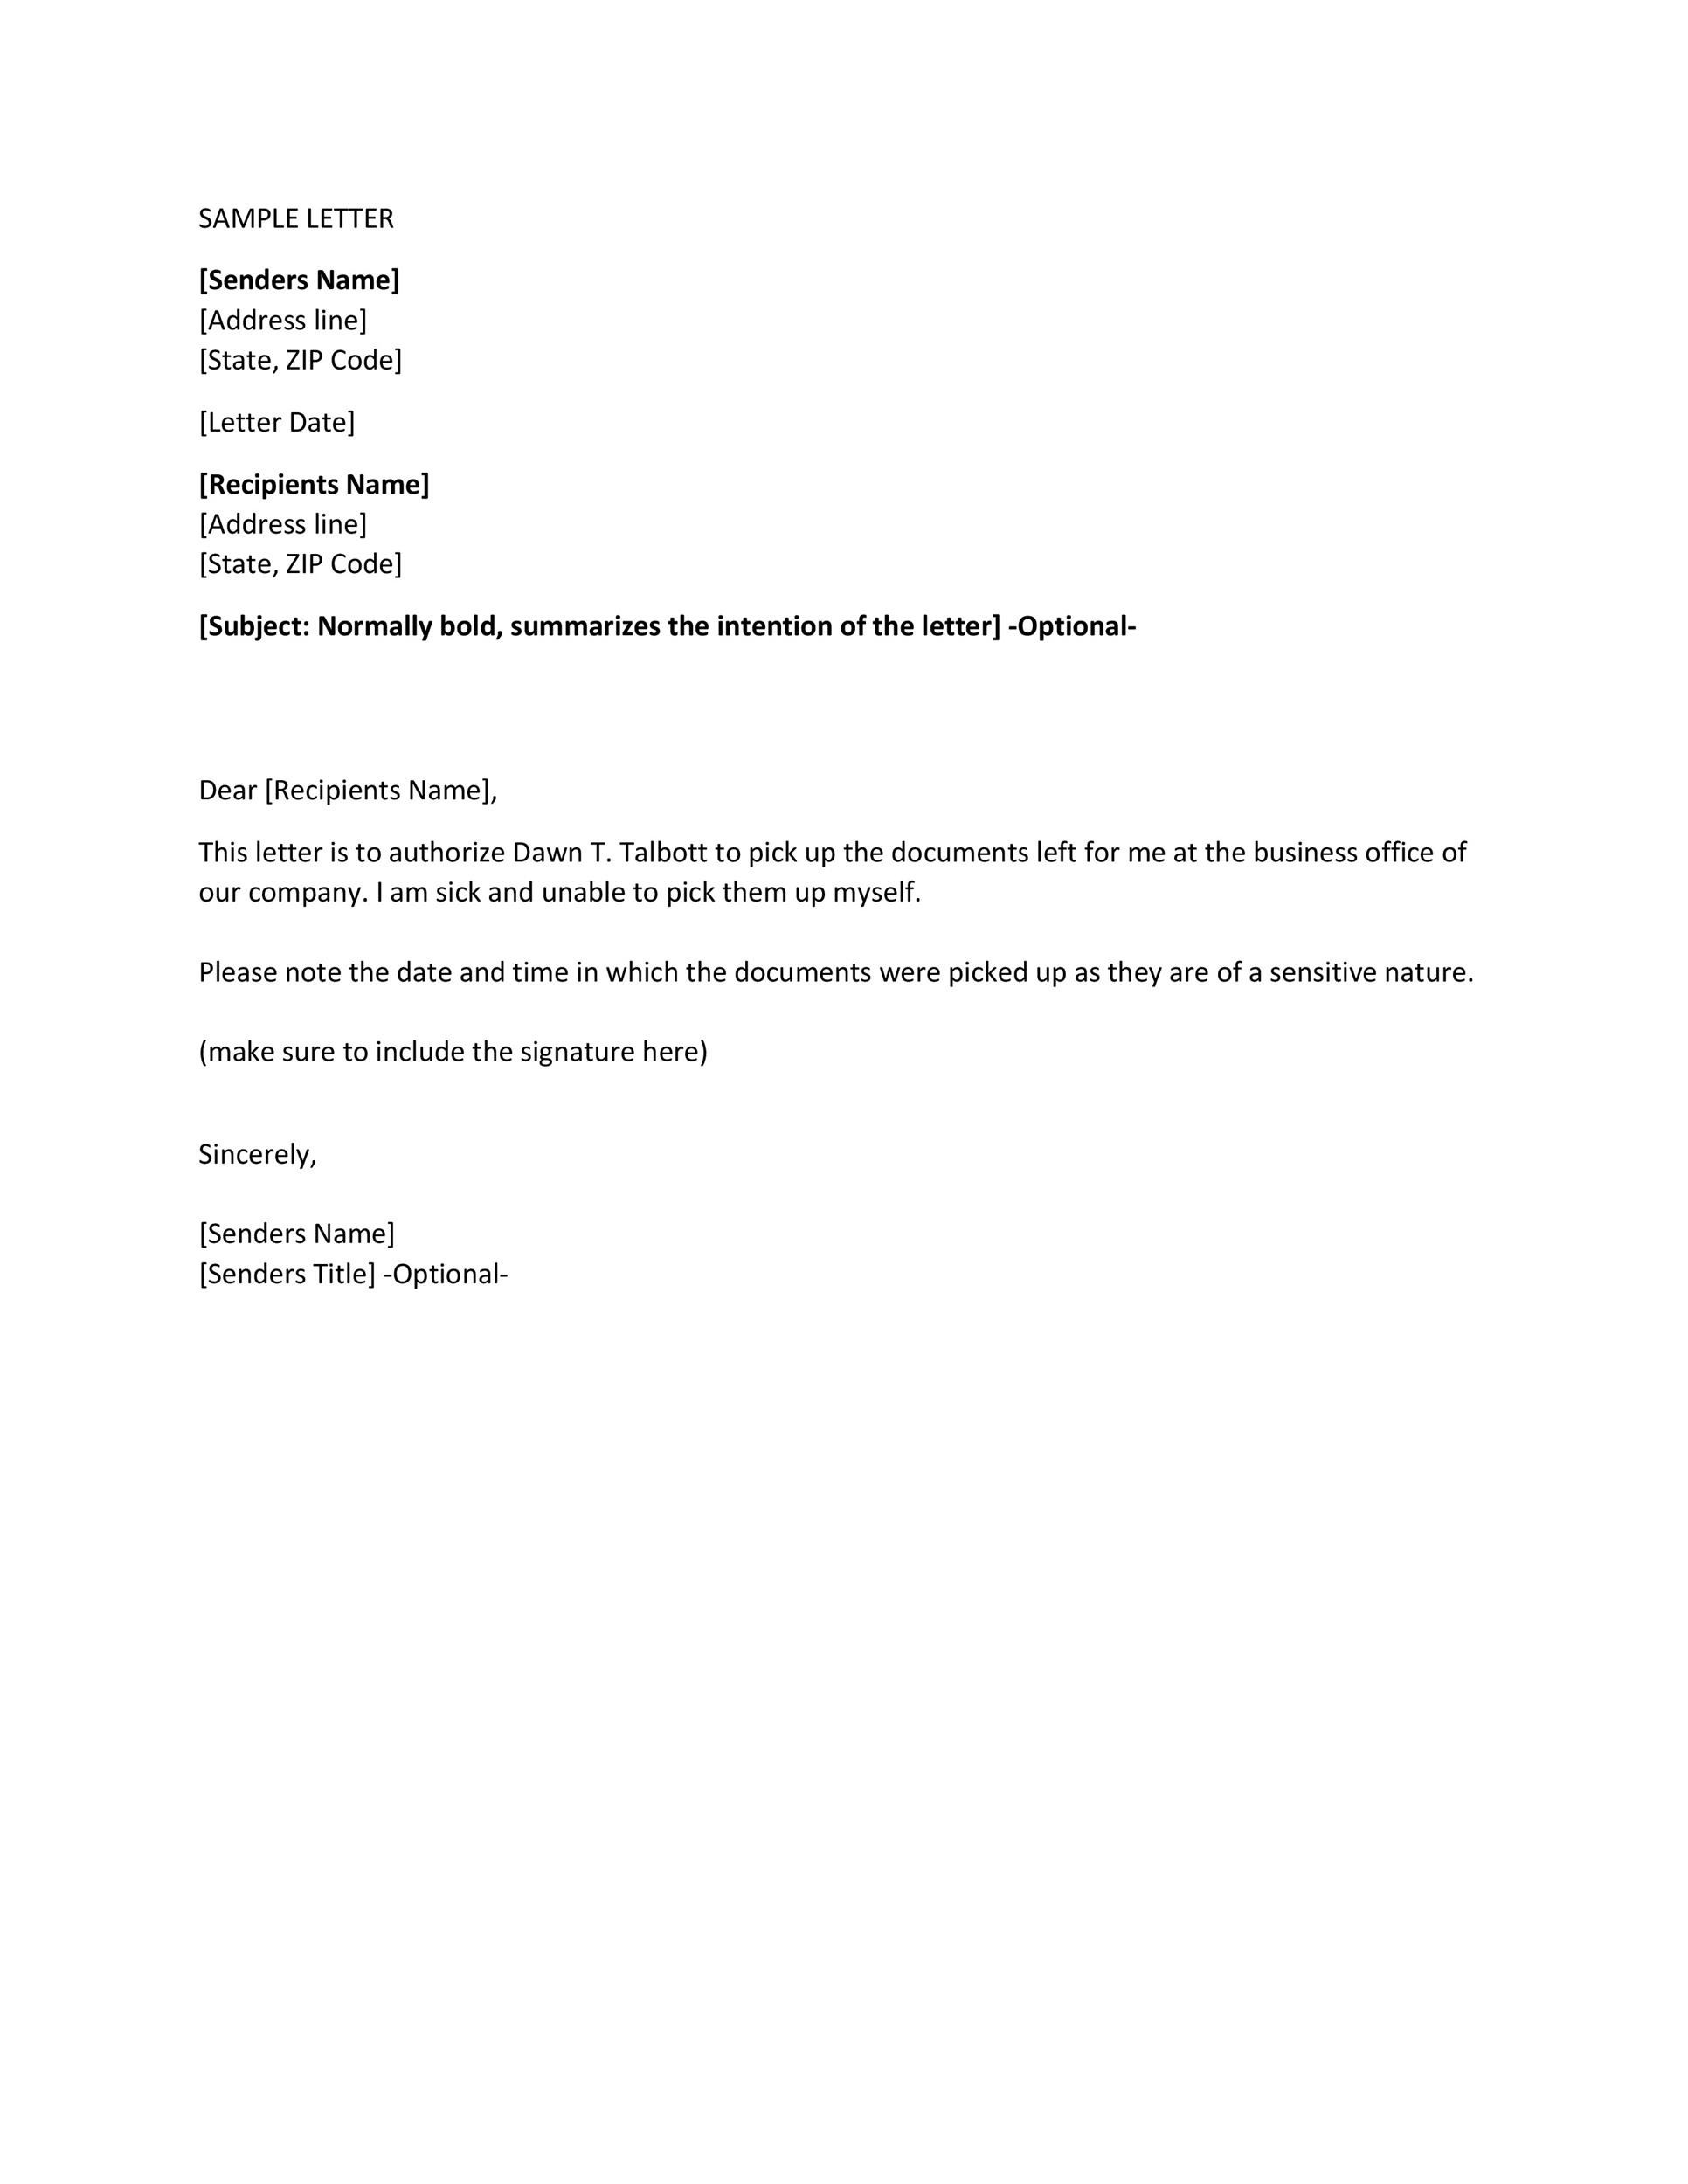 Delegation Of Disclosure Authority Letter from templatelab.com